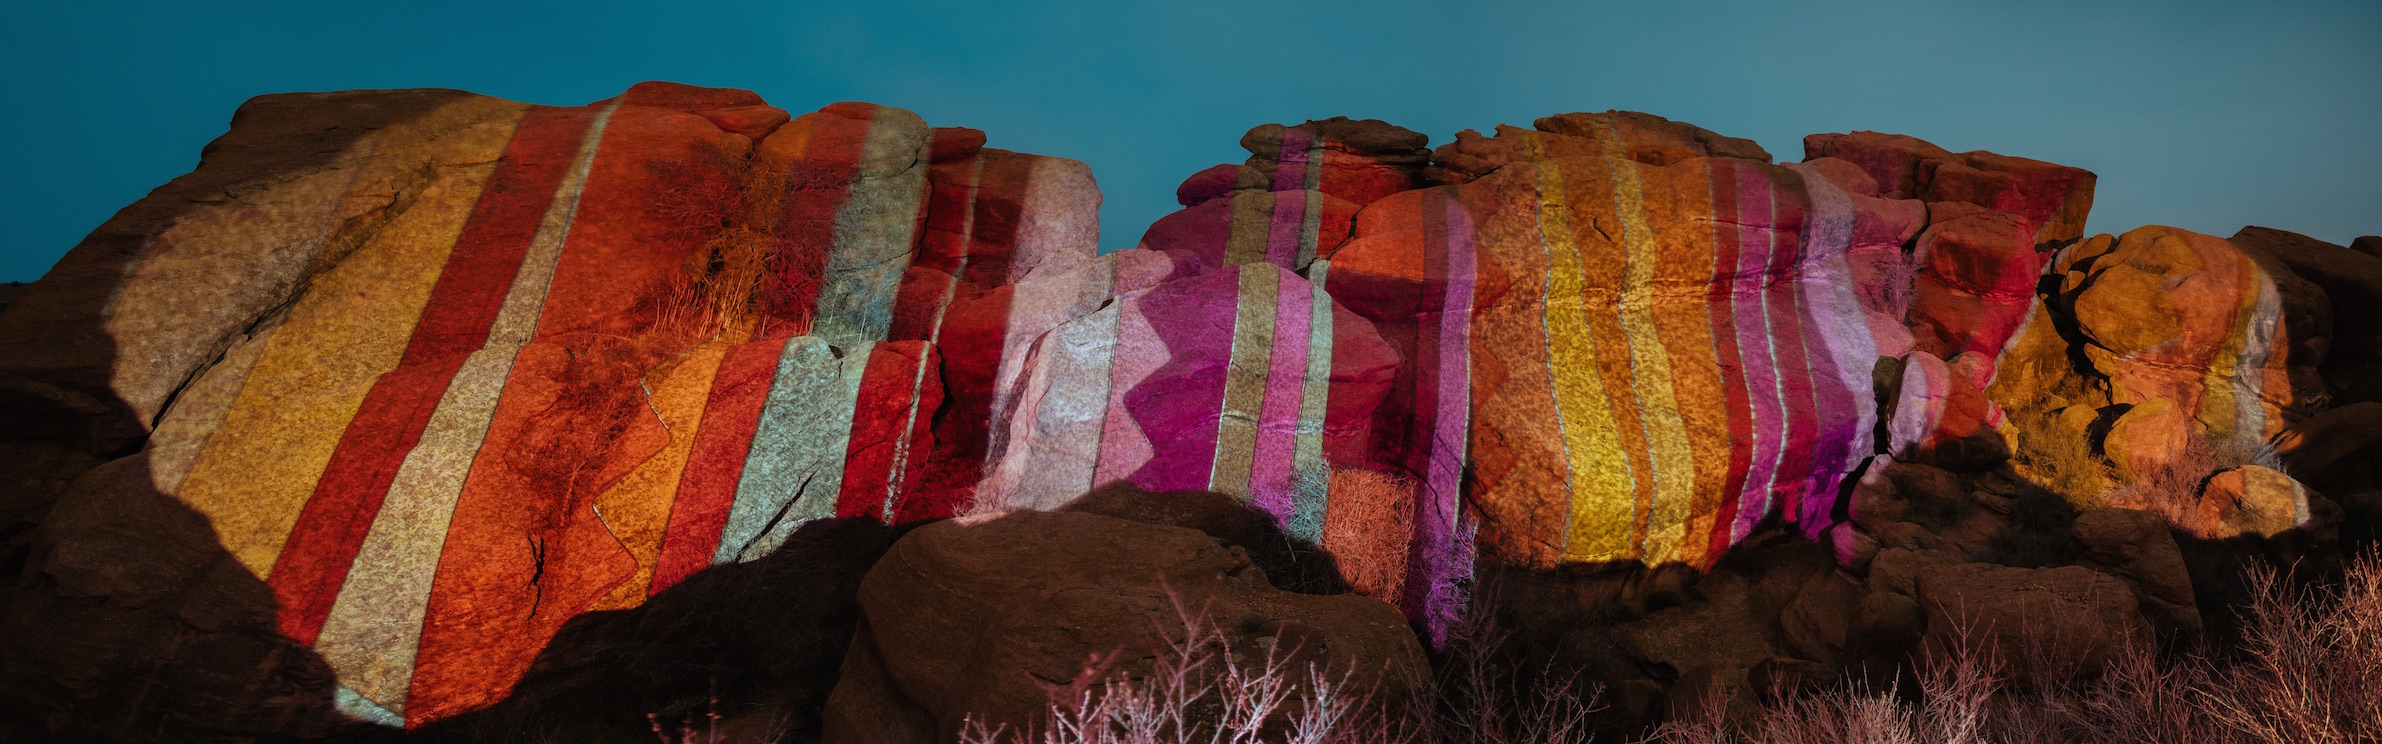 Ryan Good, Cori Anderson, 303 Magazine, Digital Graffiti, Knomad Colab Red rocks, Red Rocks